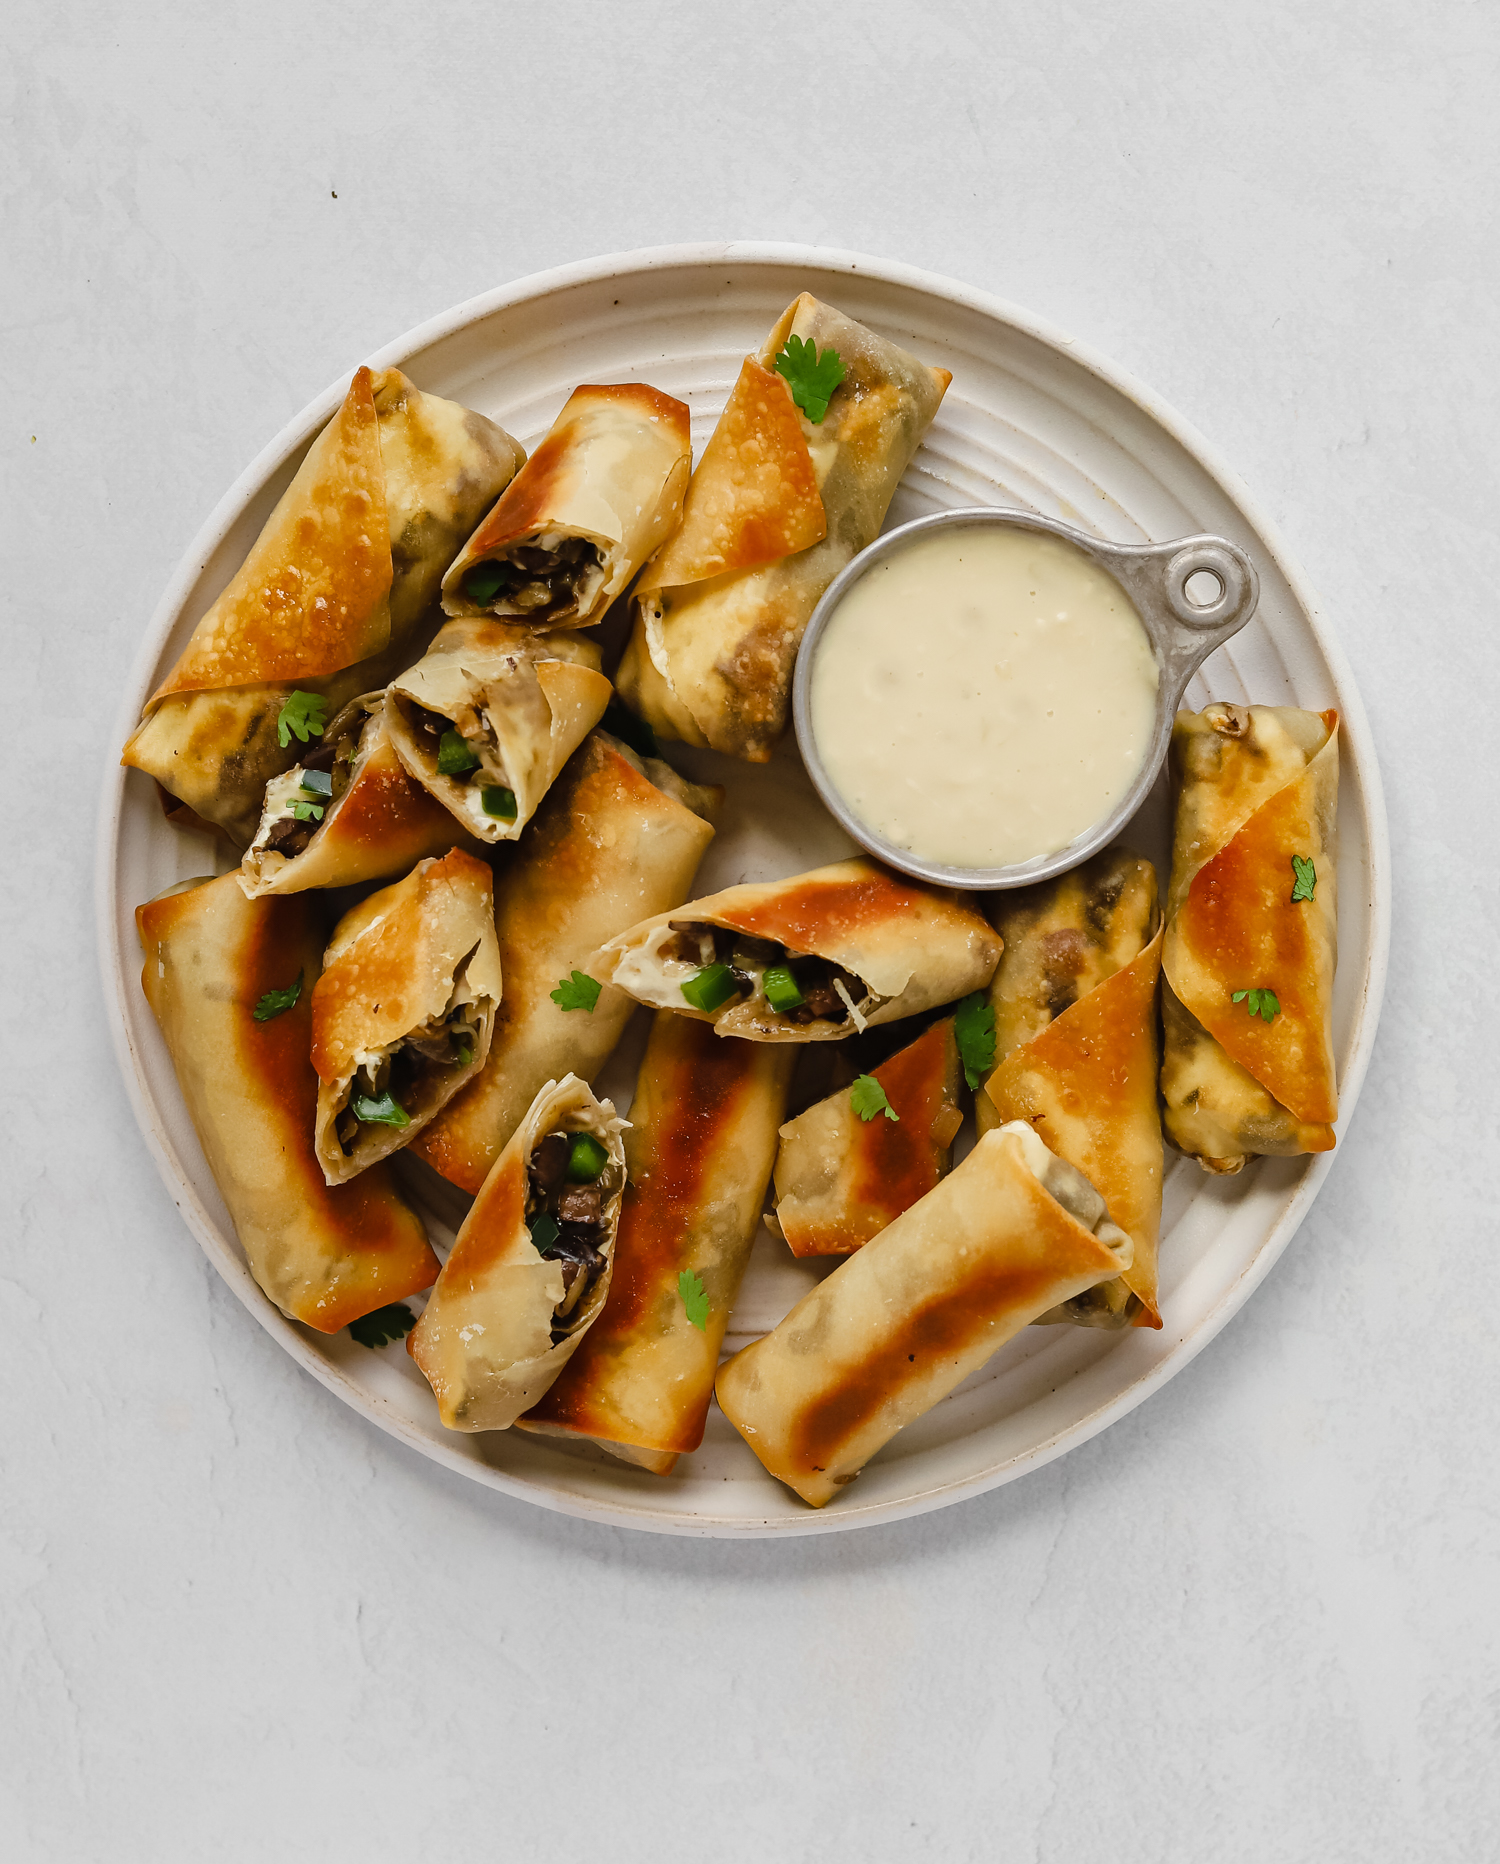 A plate of vegan philly cheesesteak egg rolls with a cheese dipping sauce on a white plate